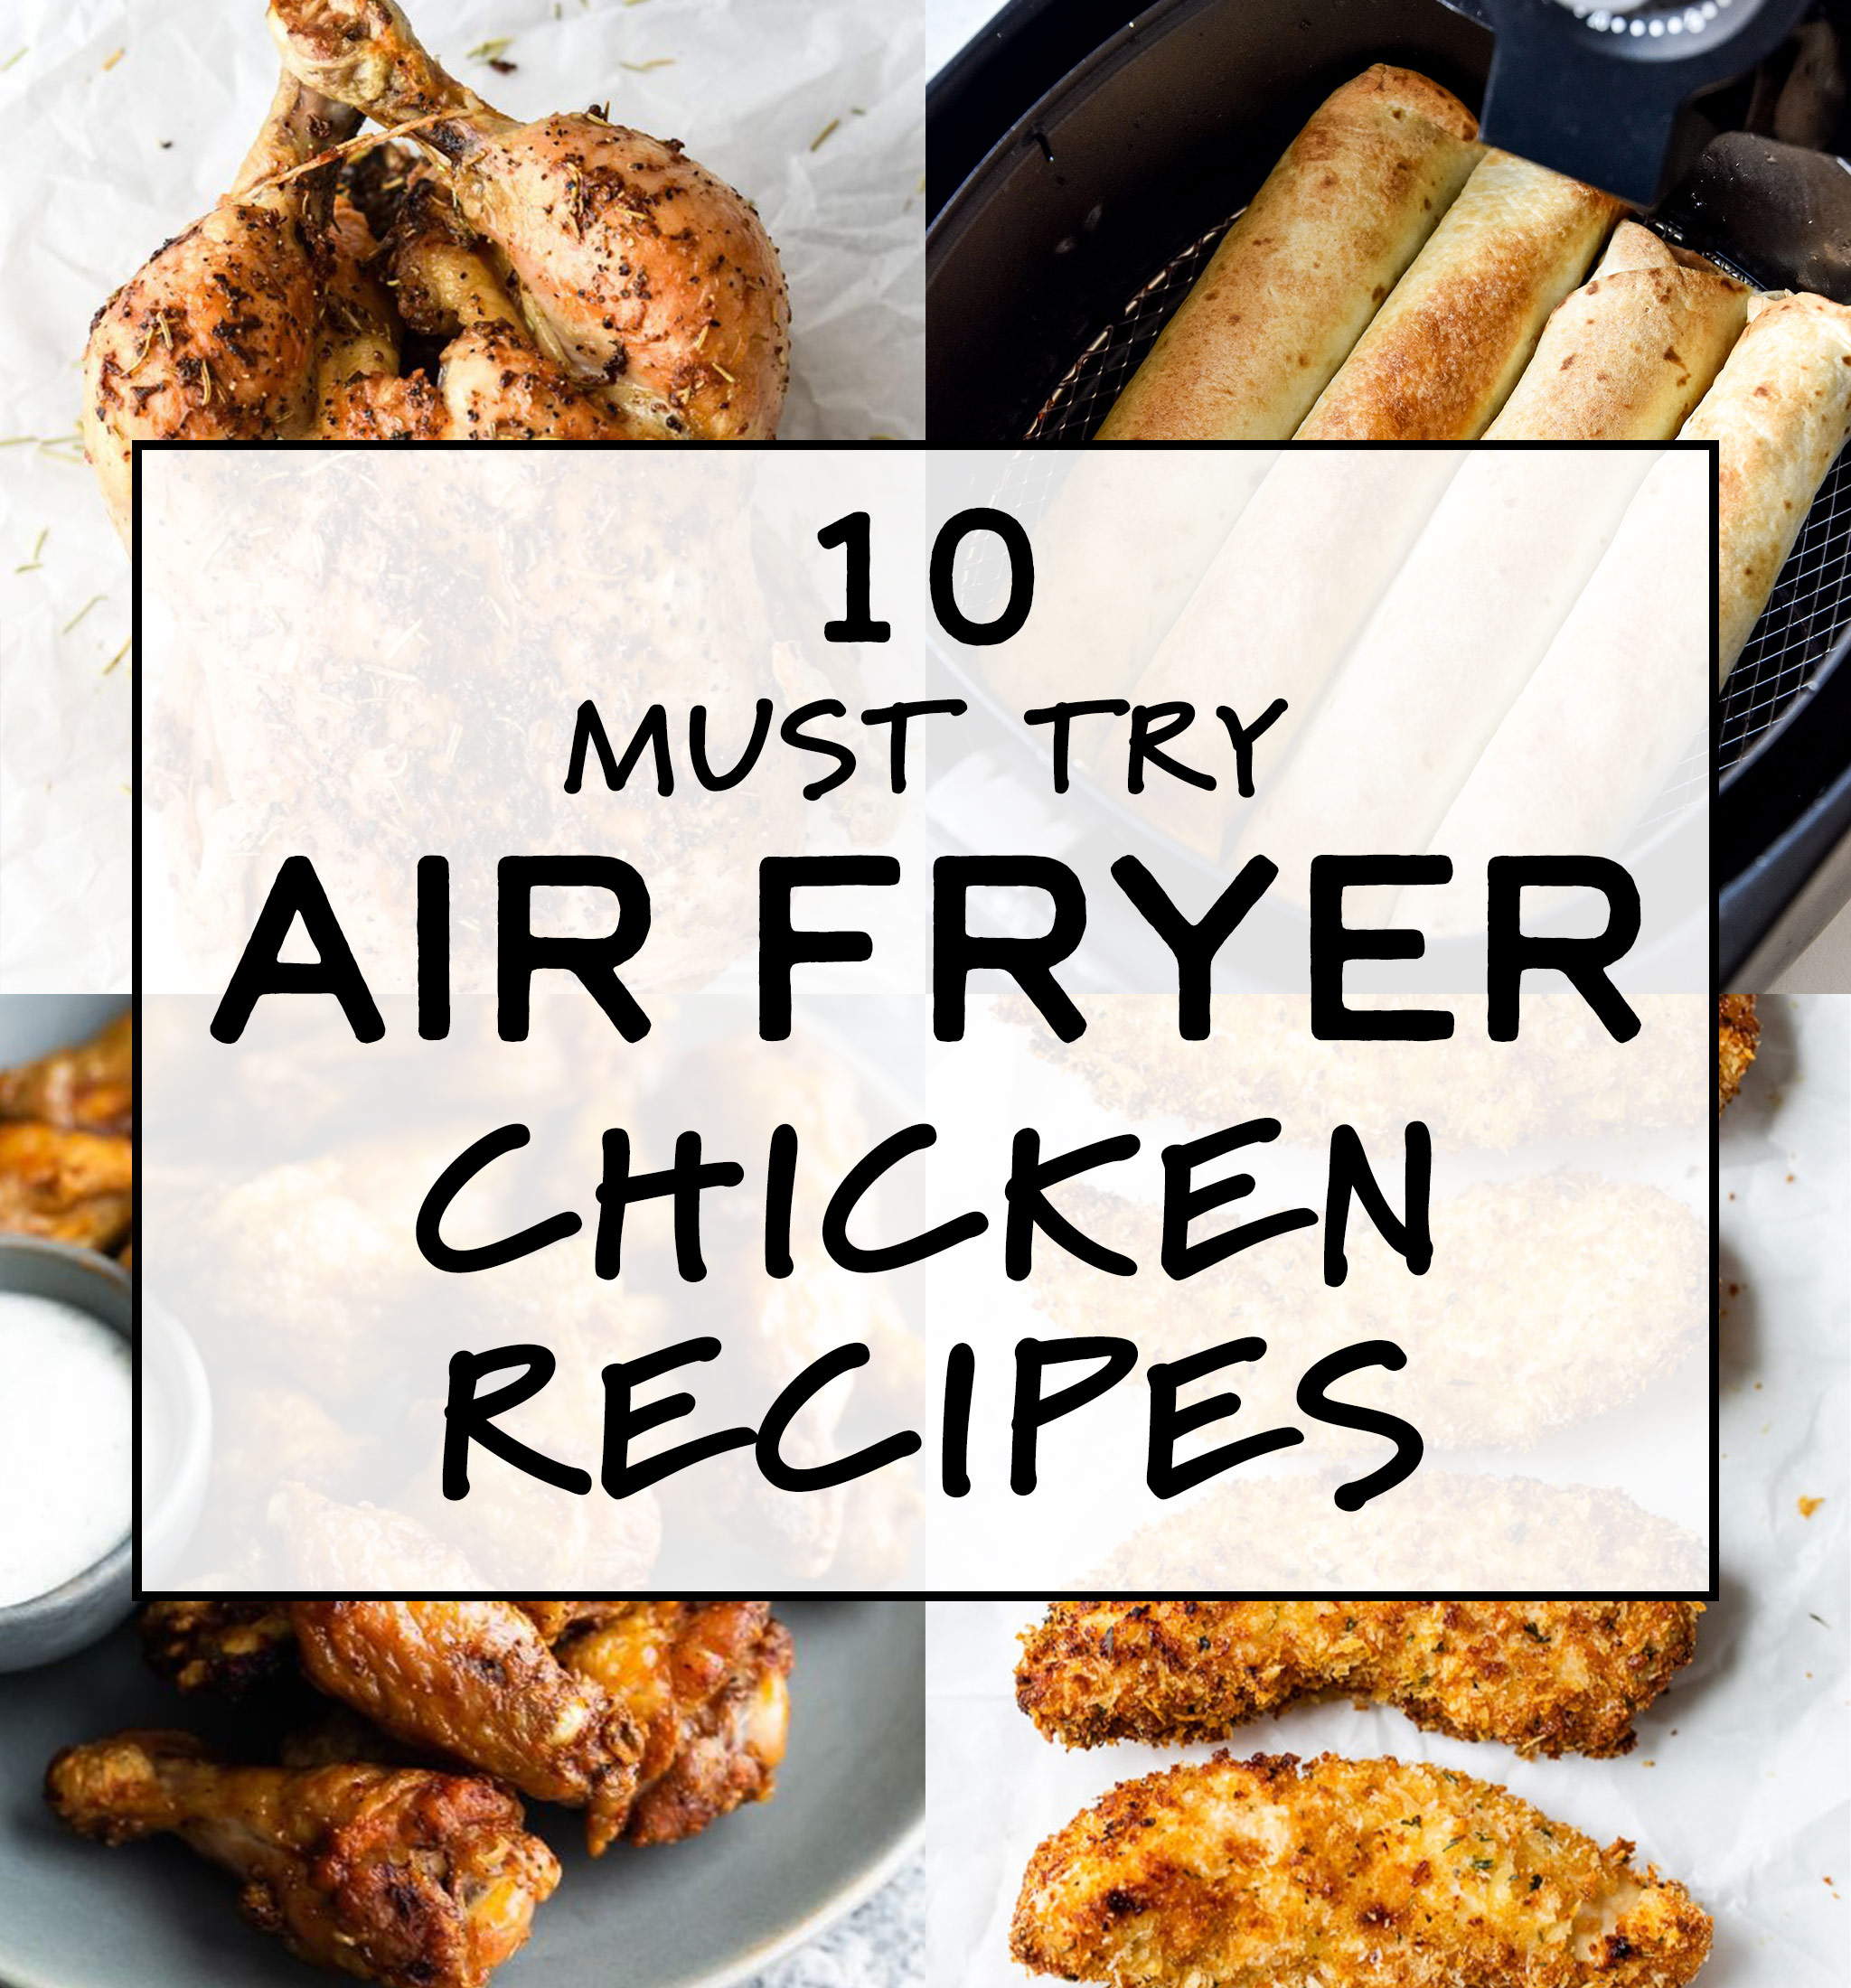 cover photo for must try air fryer chicken recipes